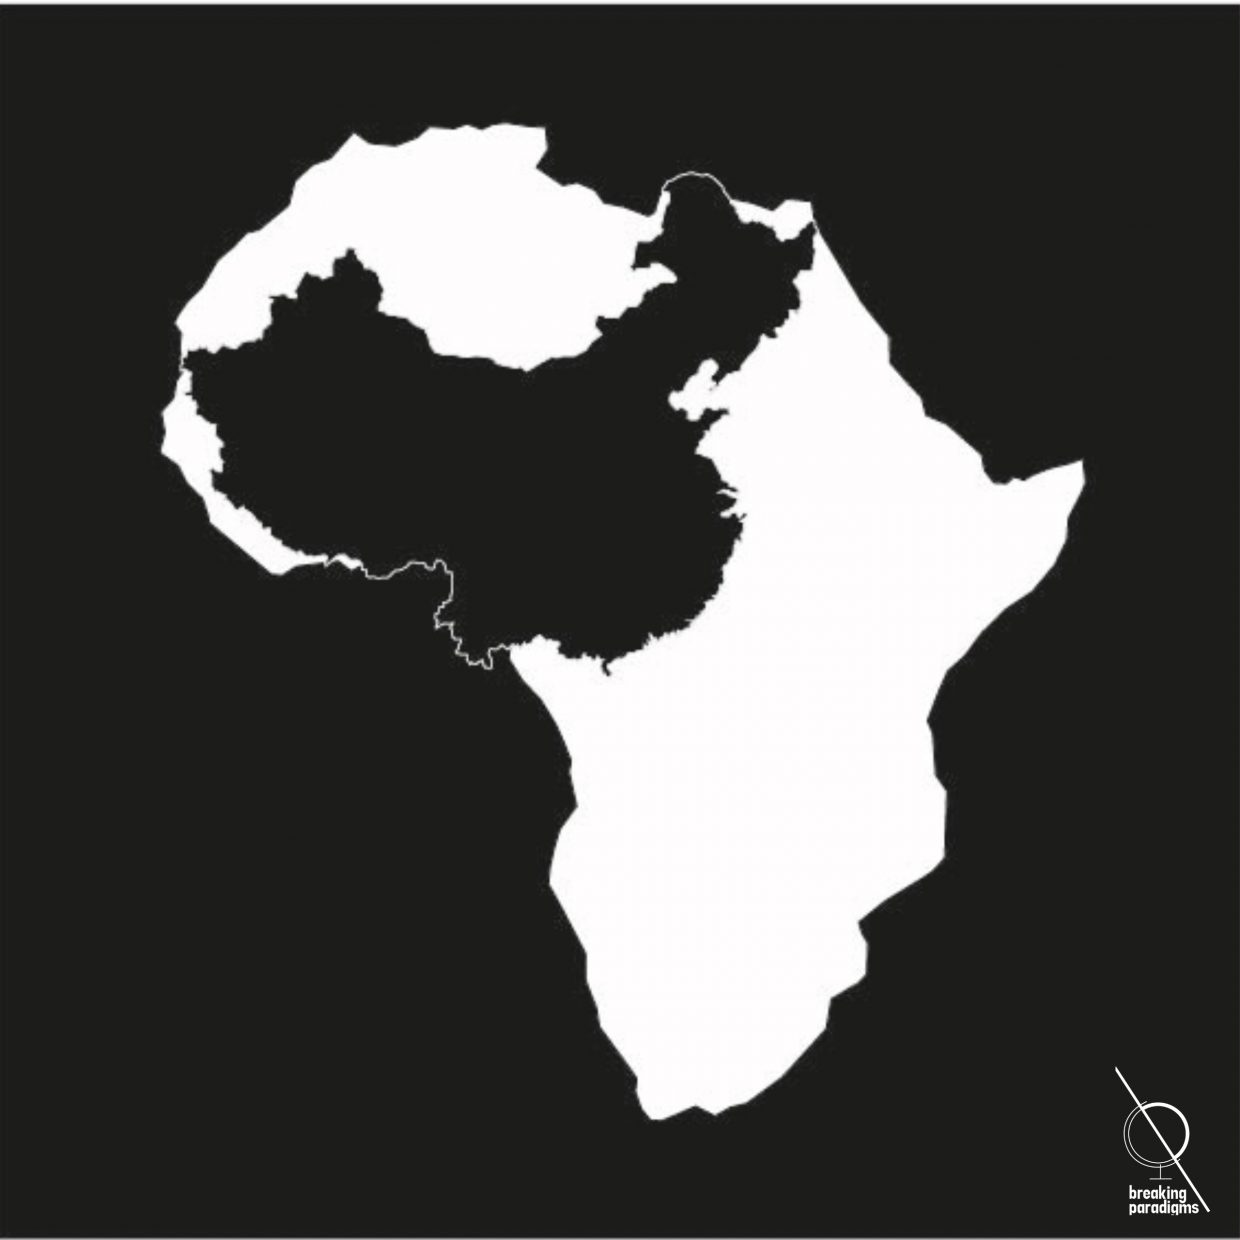 A white map of Africa on a black surface with a map of China within the African boarderlines in black